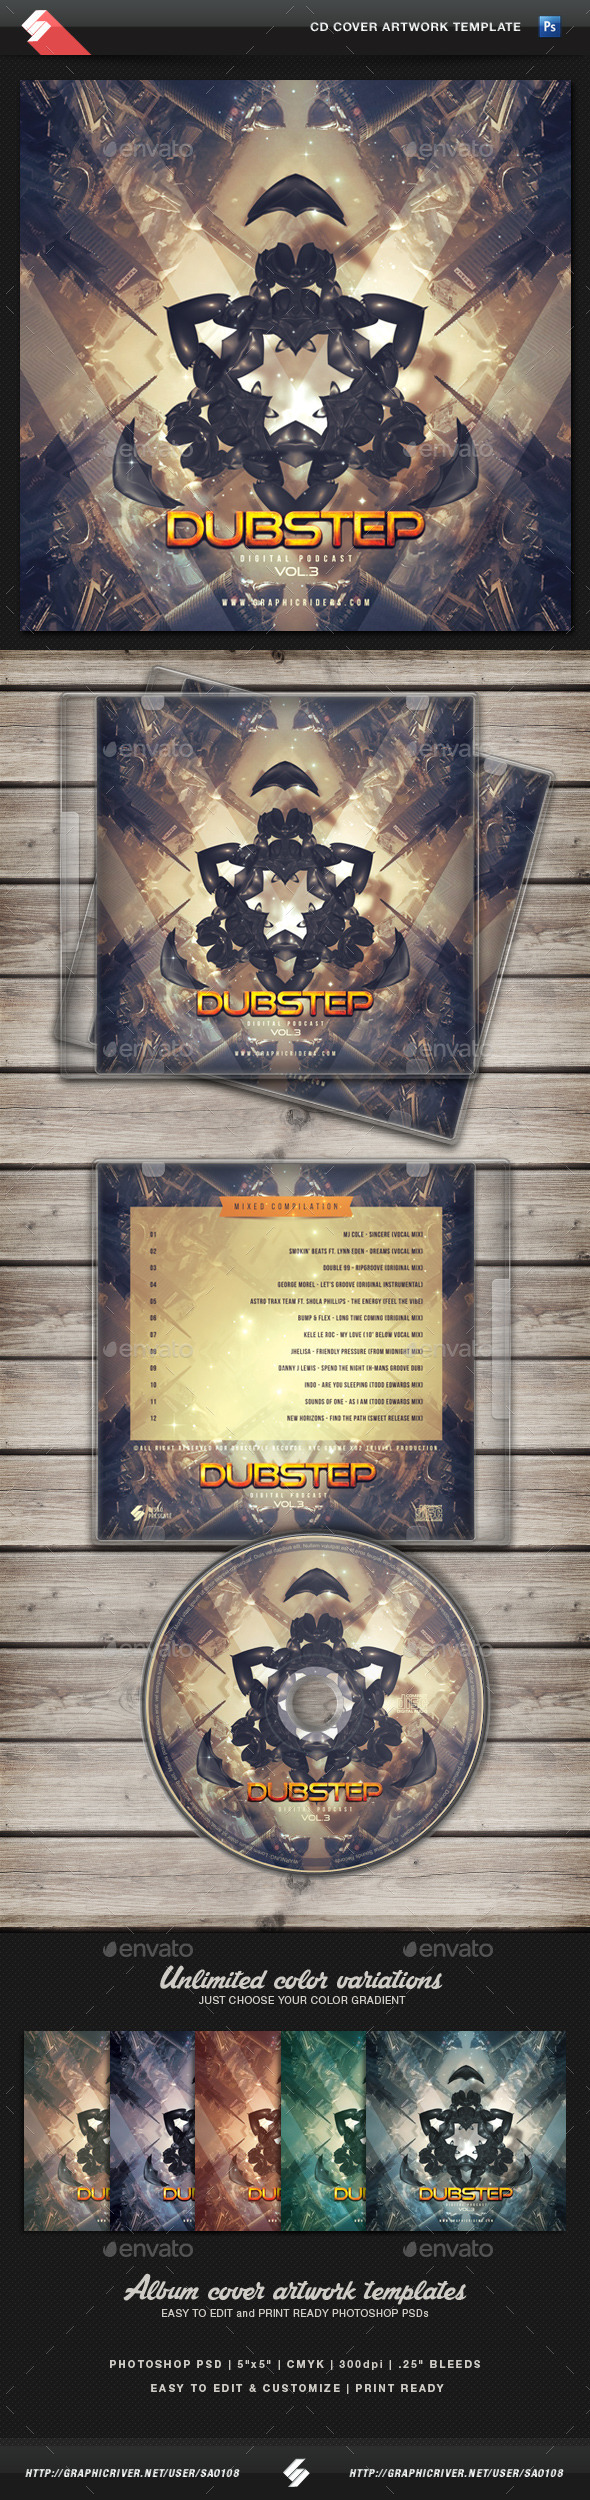 GraphicRiver Alien Dubstep CD Cover Artwork Template 11432974